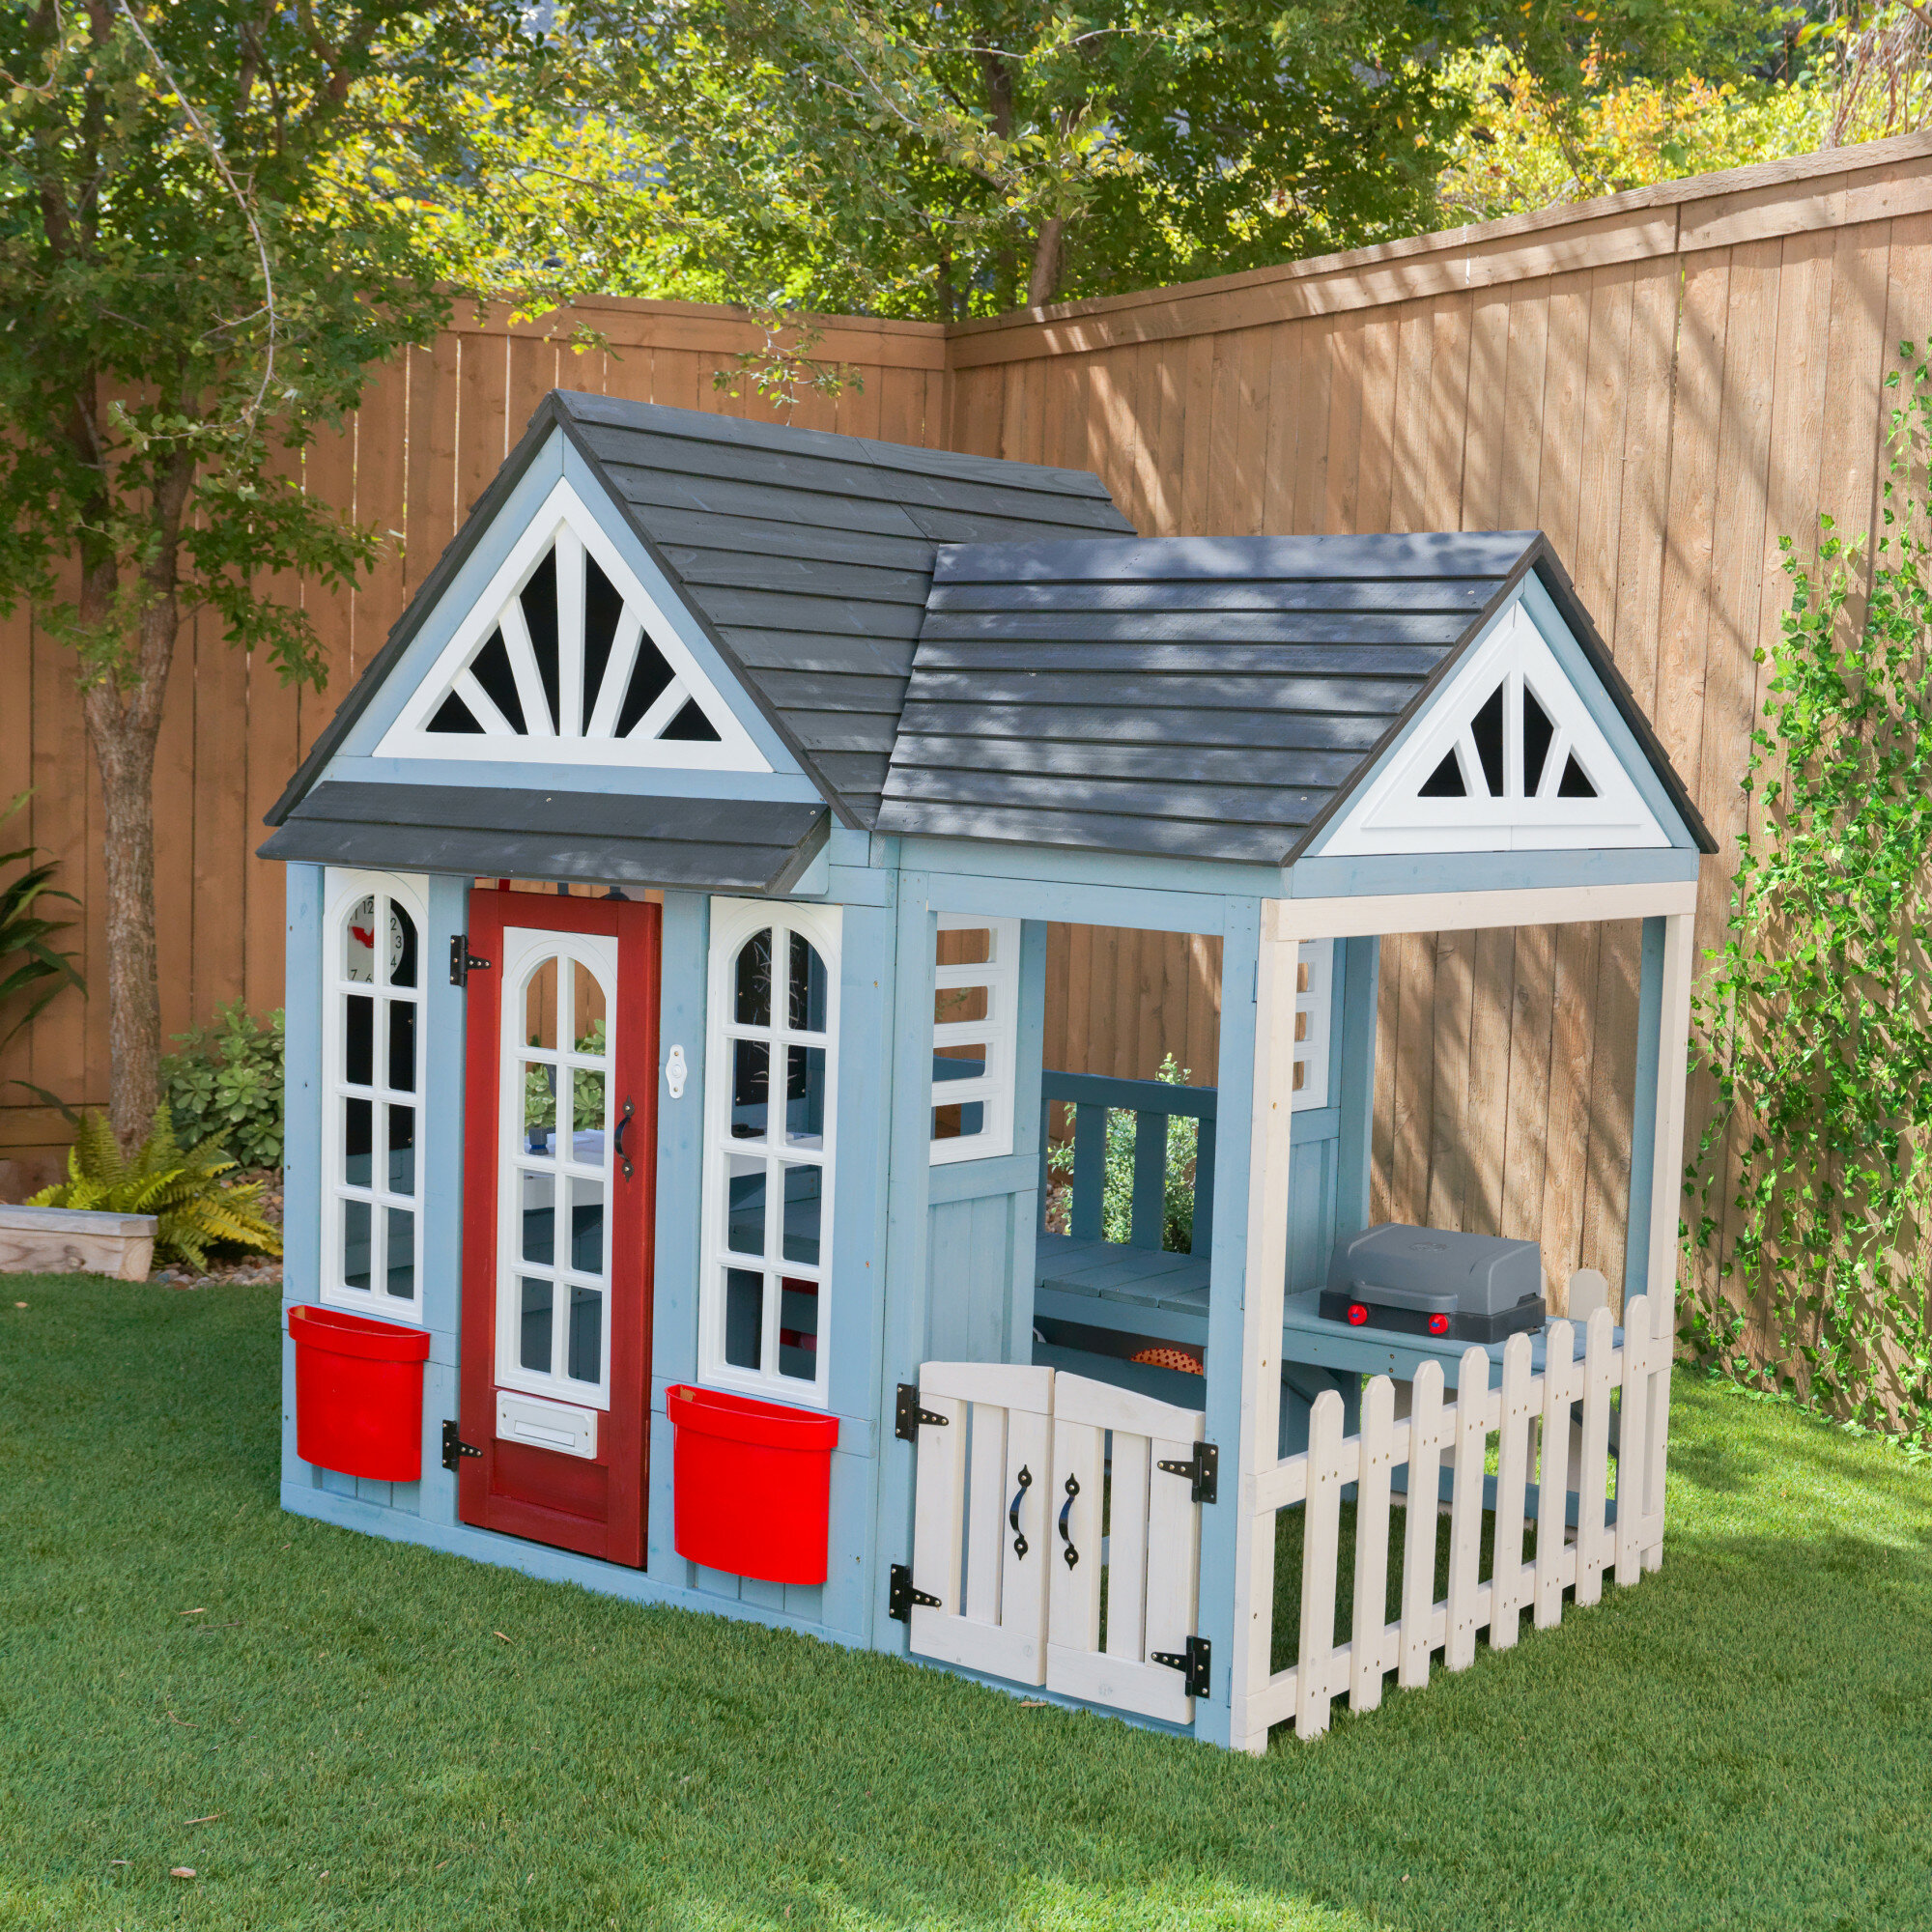 Flower Boxes 21 W Shed Flower Box Playhouse Flower Box Window Boxes Patio Lawn Garden Gardening